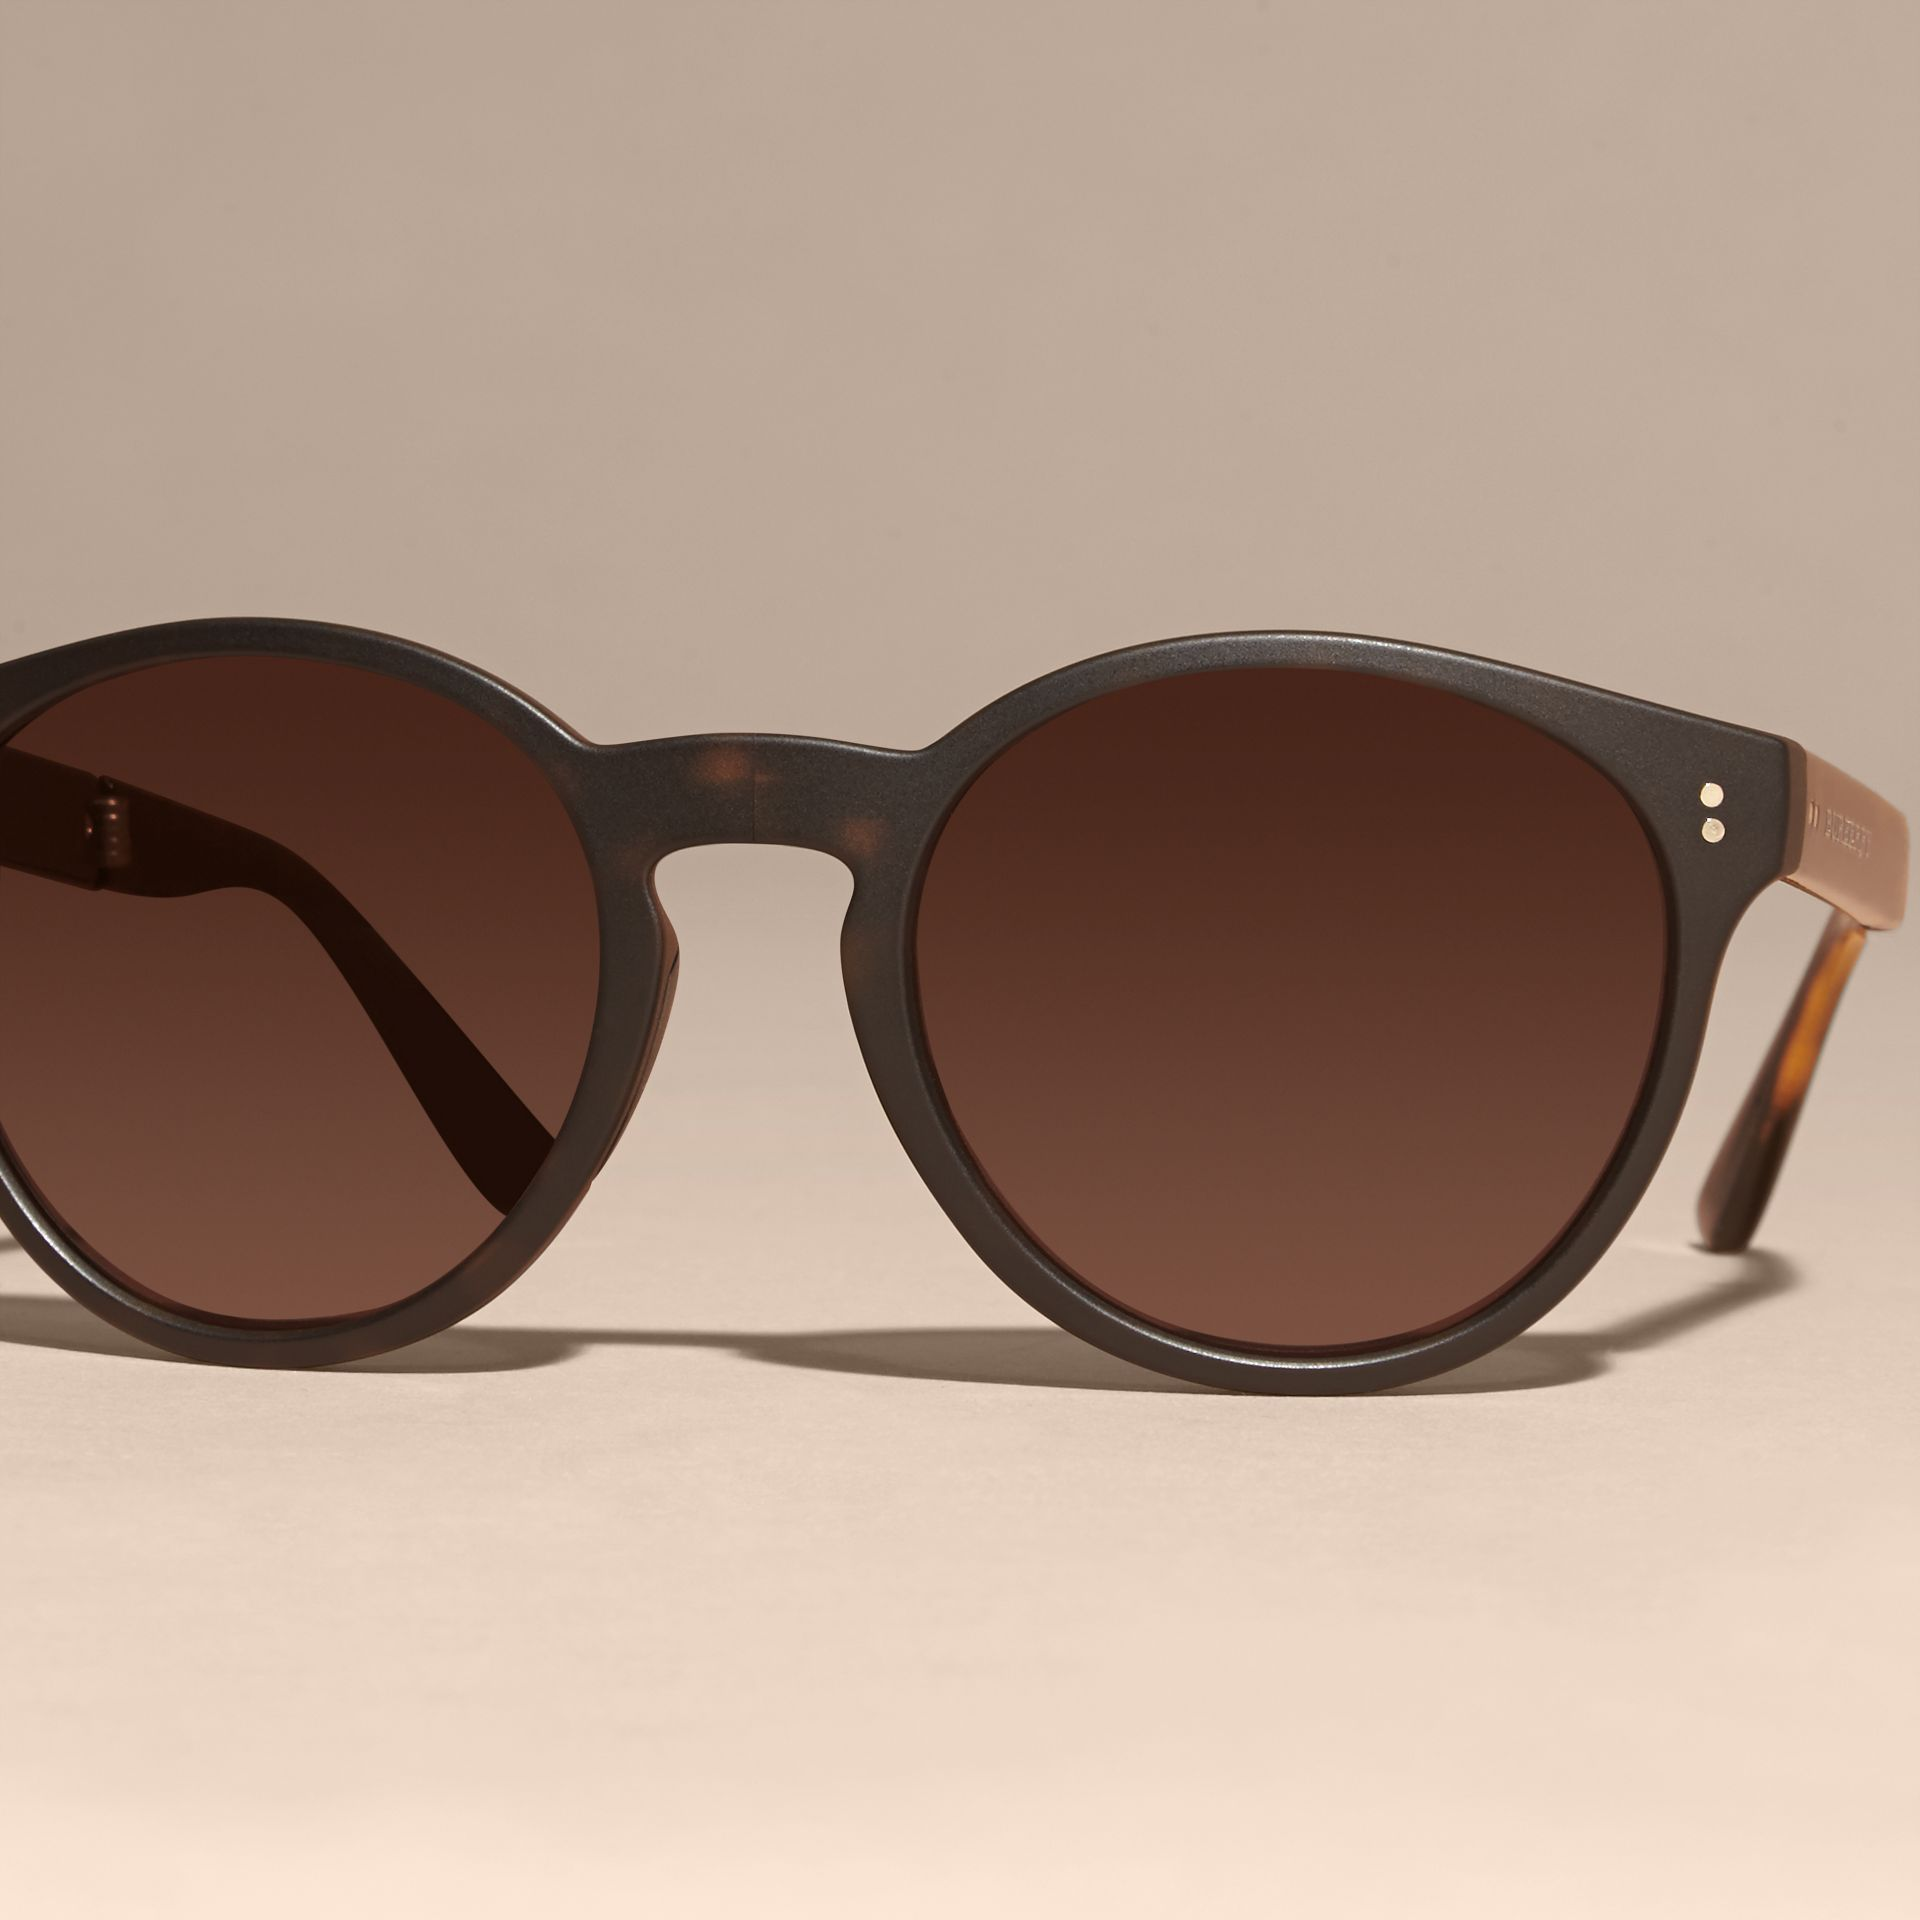 Folding Round Frame Sunglasses in Tortoise Shell - gallery image 3